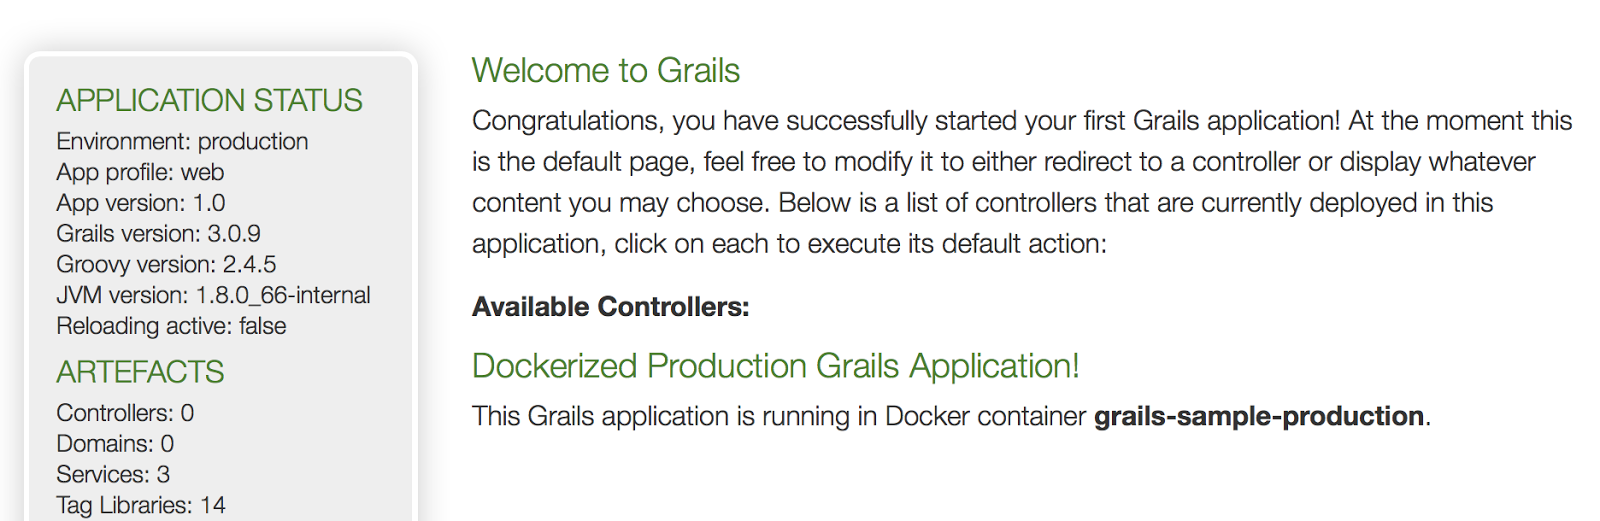 Grails Goodness: Run Grails Application As Docker Container